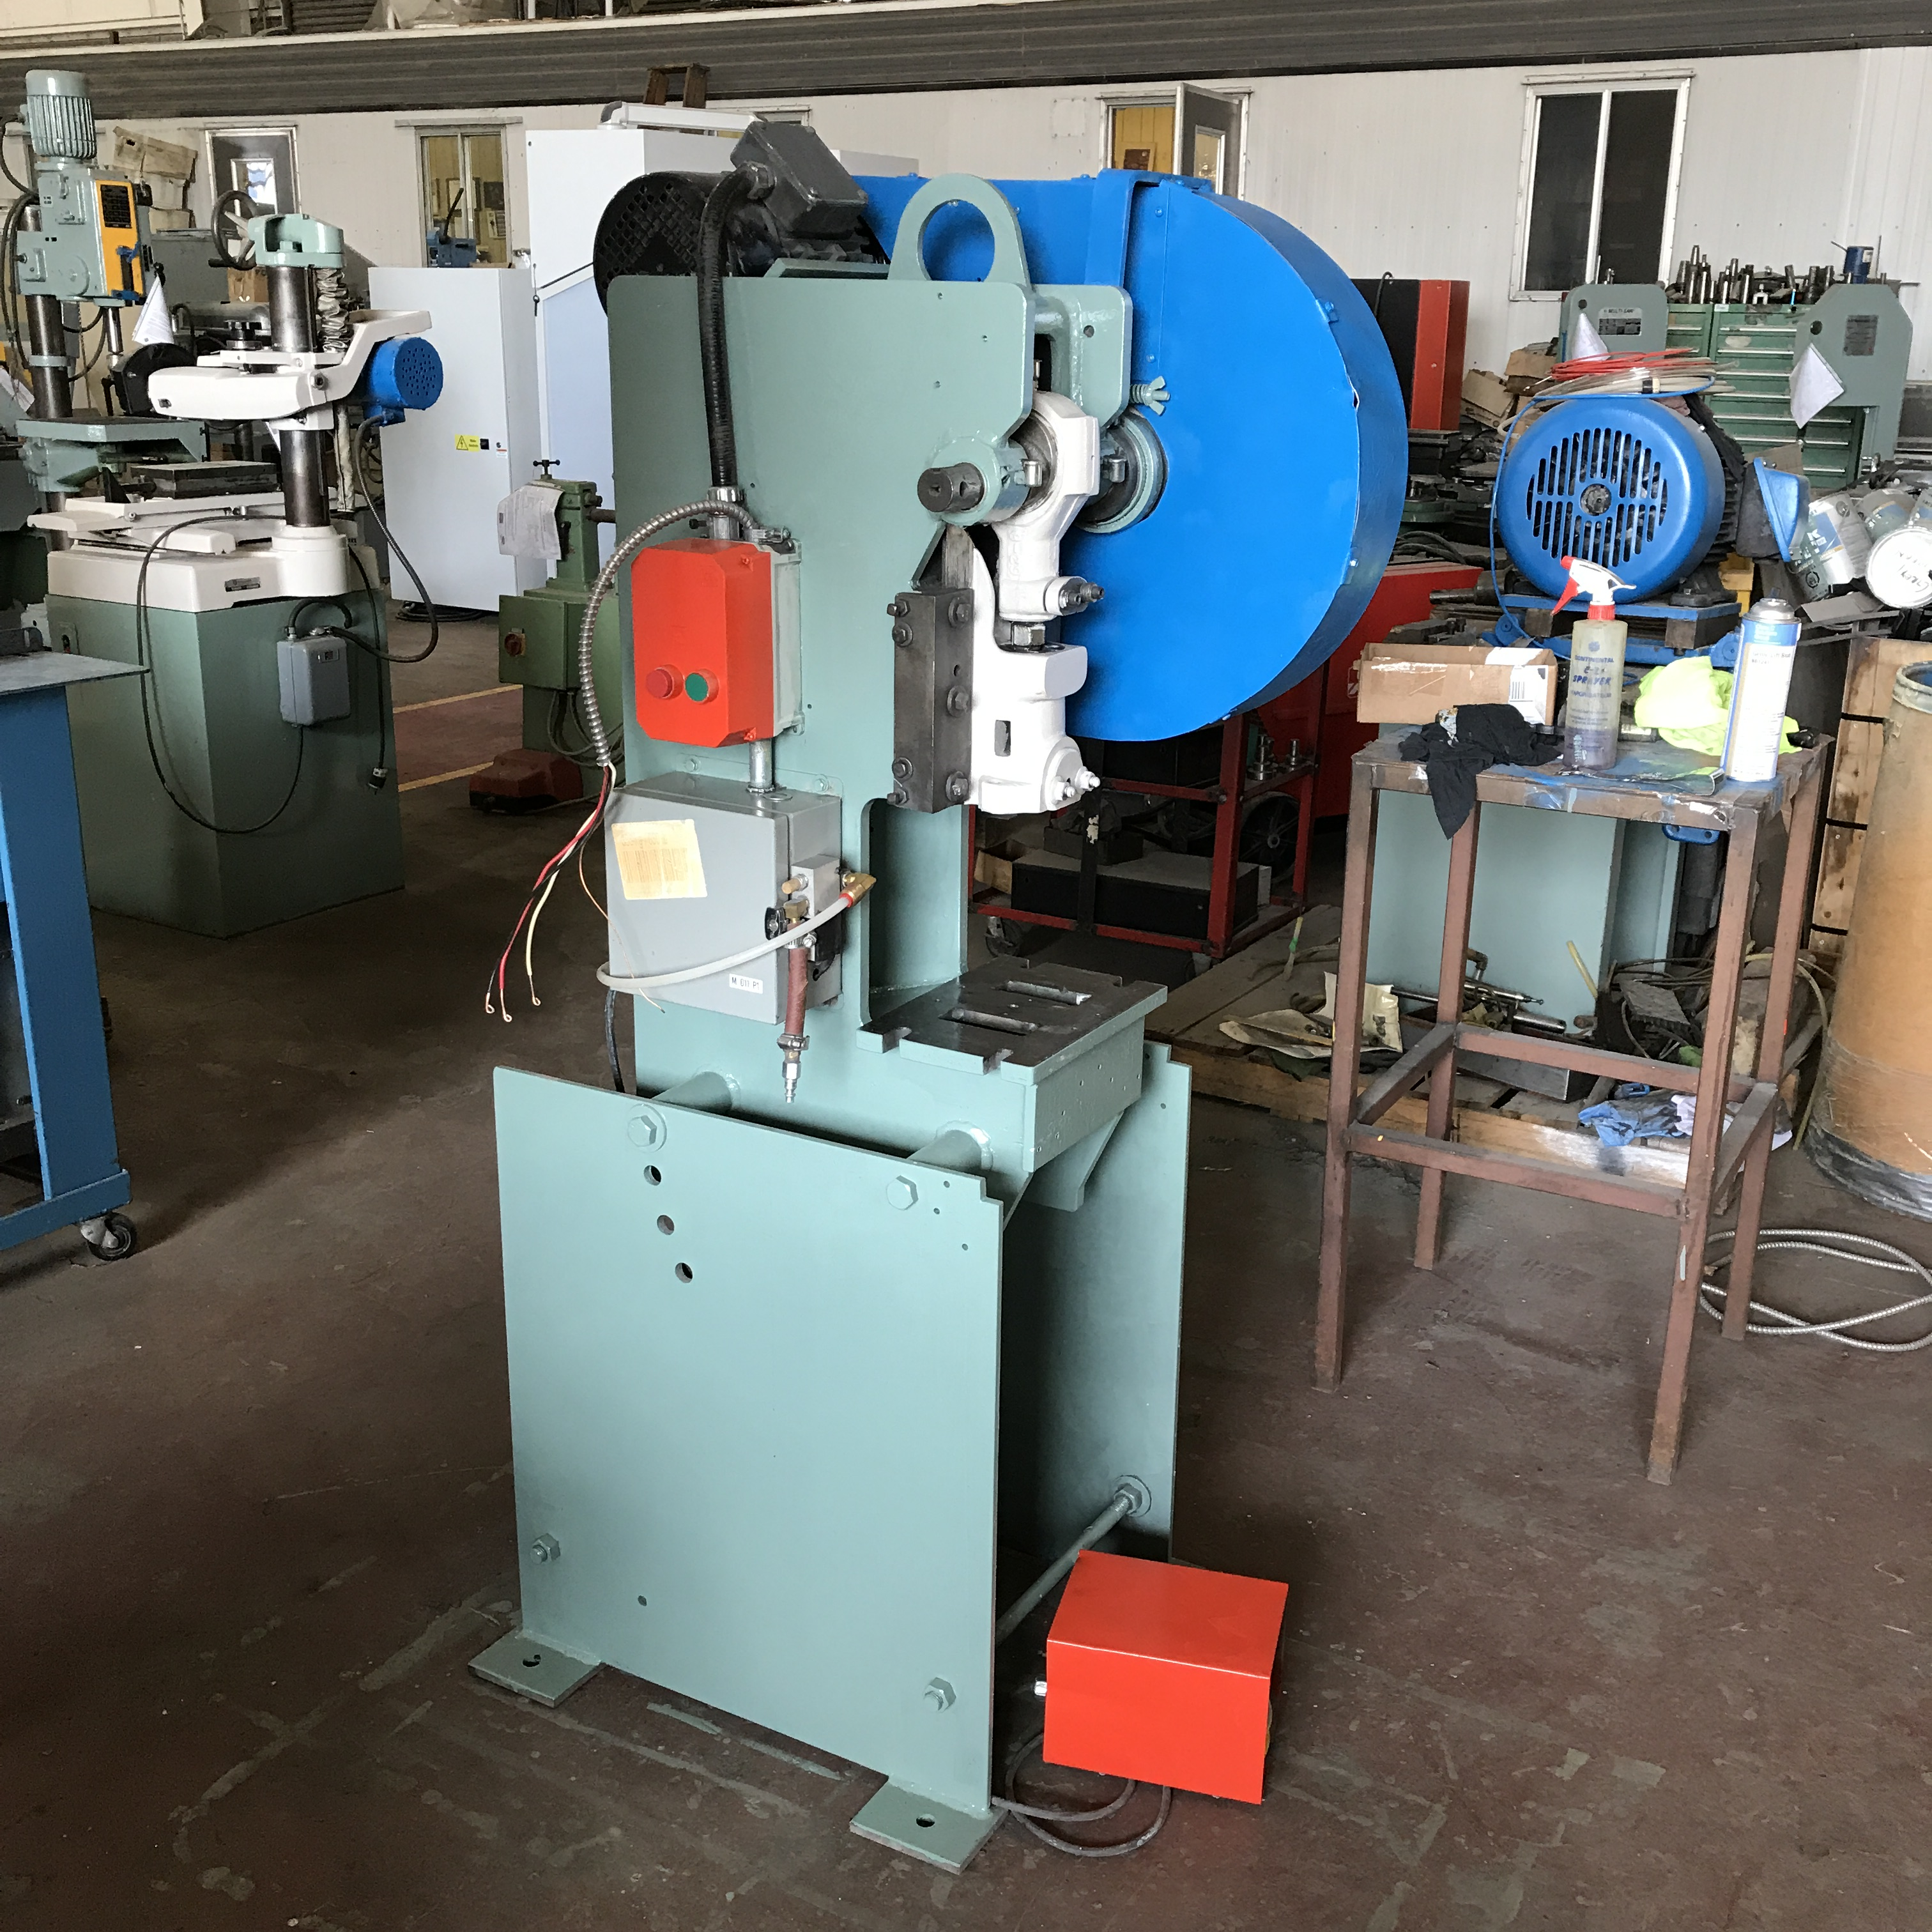 Pool Filtersand Obi Presses Punch Mechanical Hydraulic Obi Metal Stamping